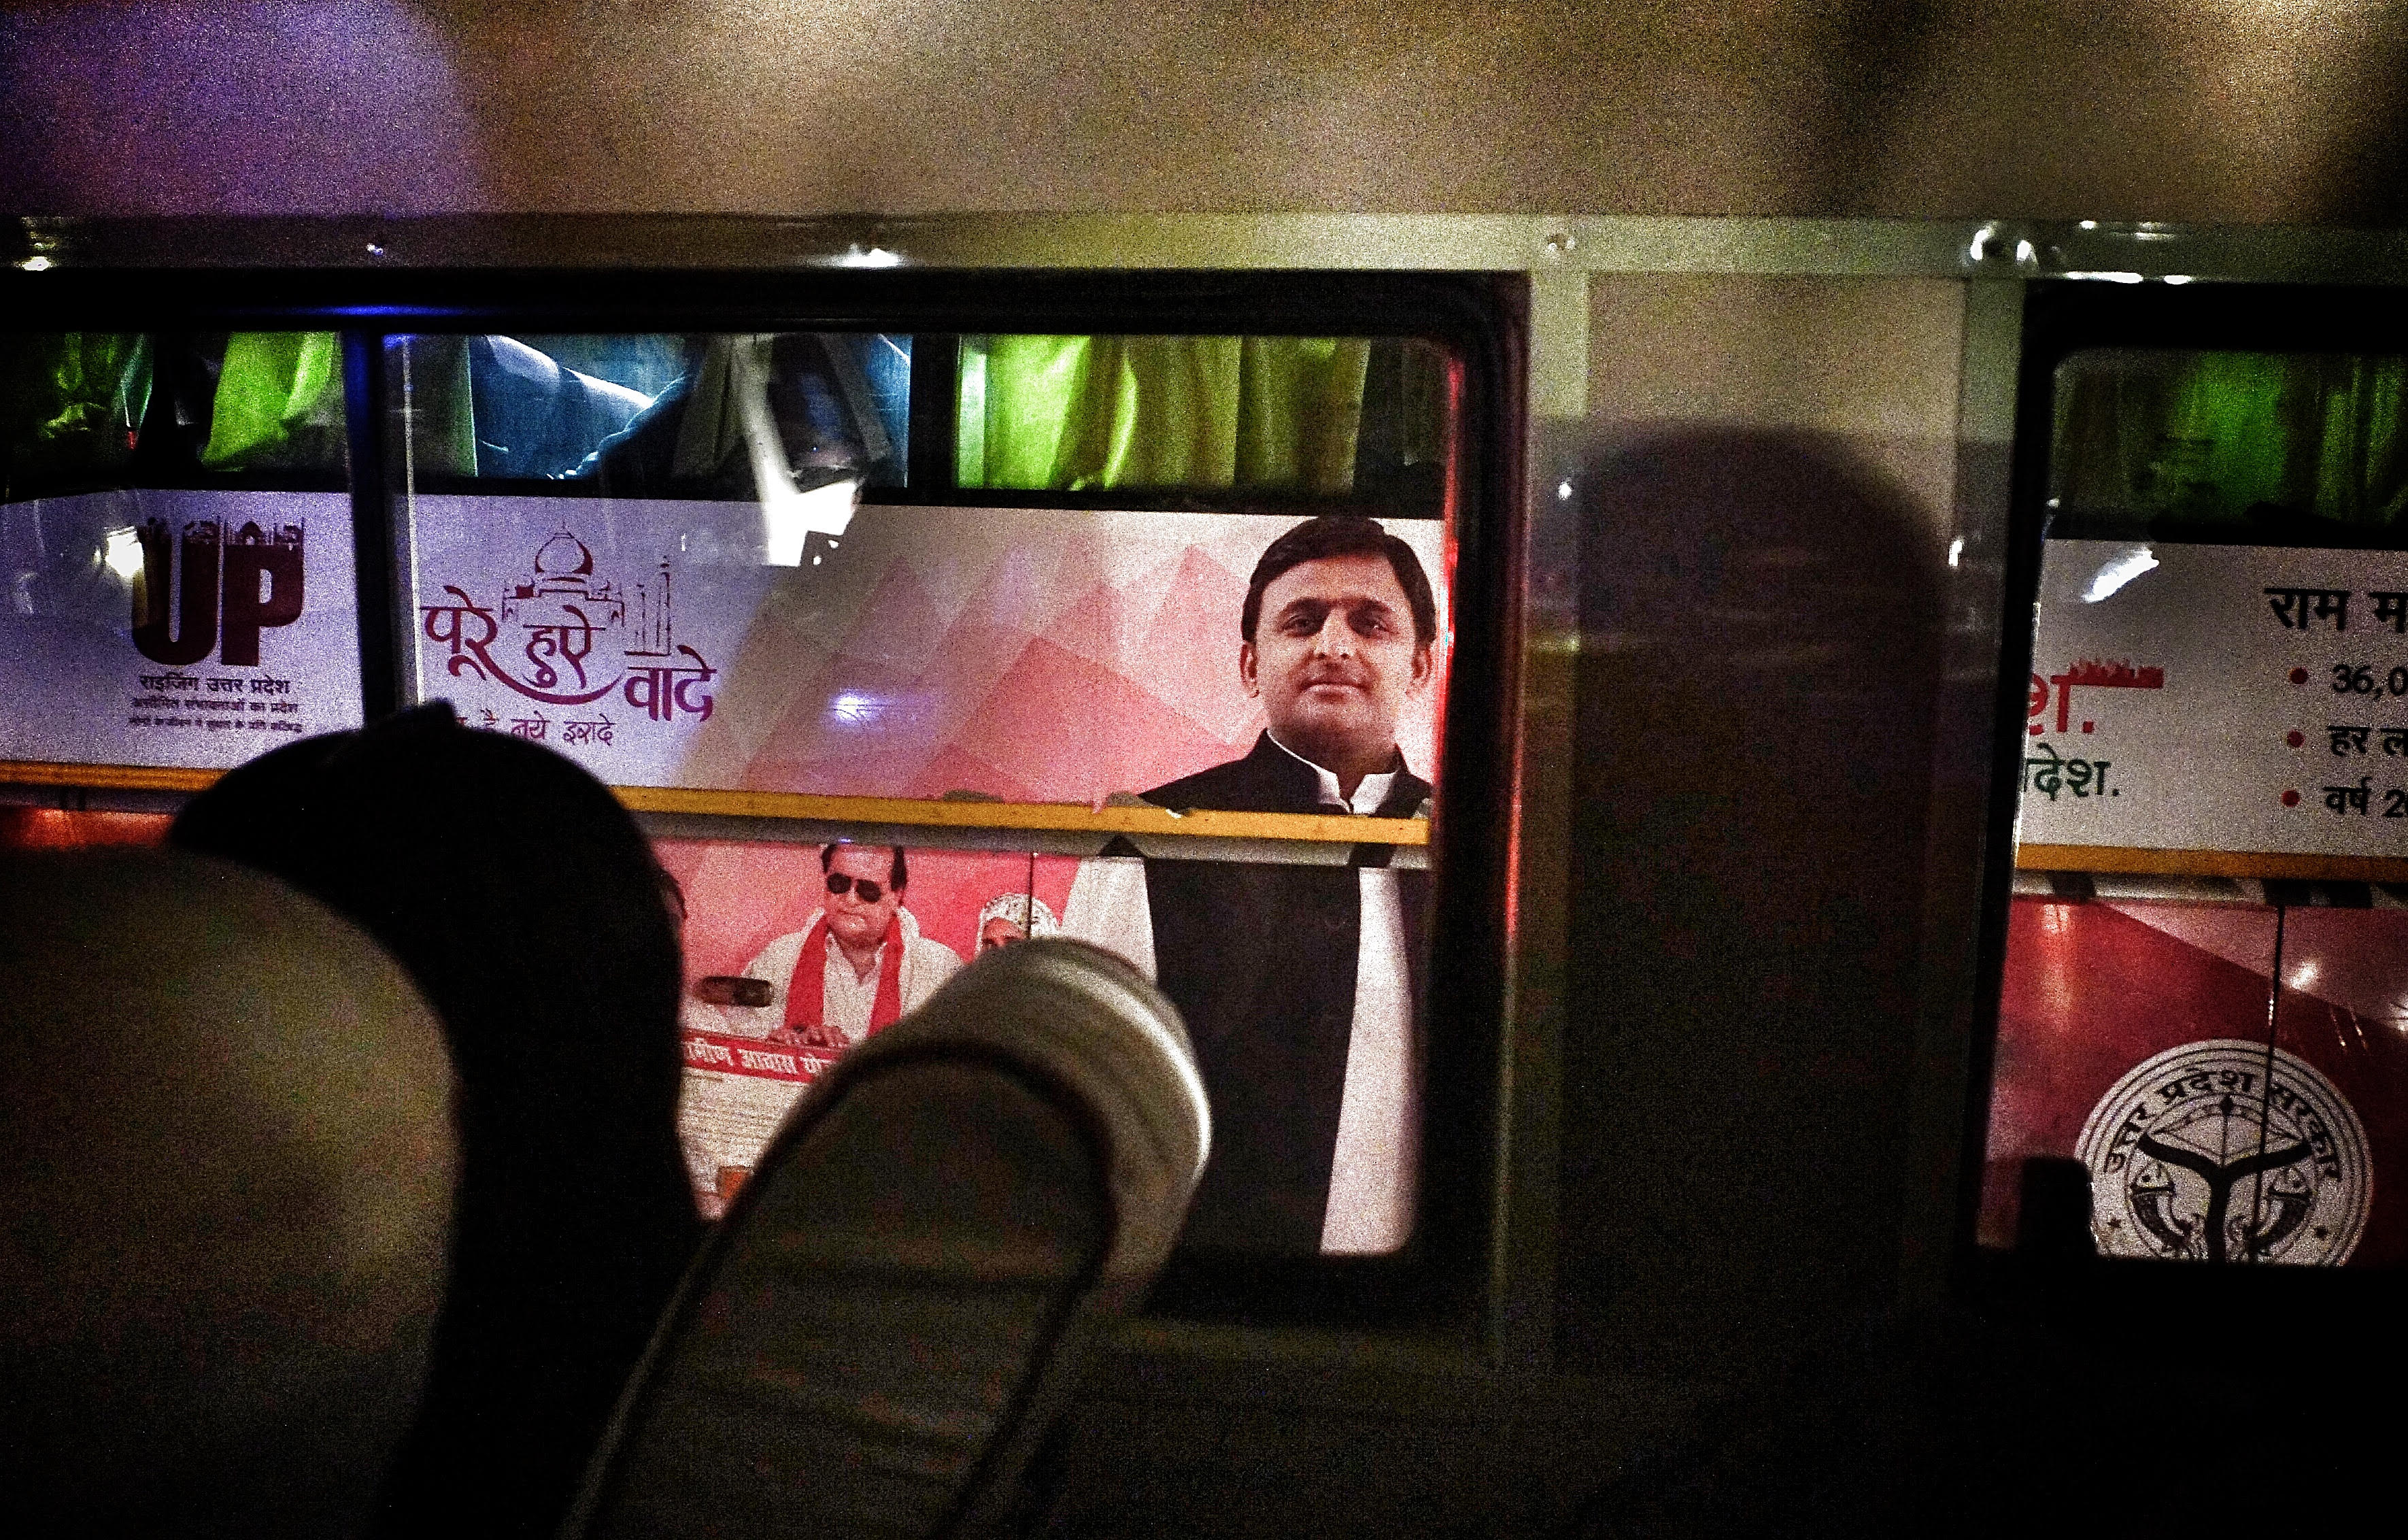 Akhilesh Yadav on a UP tourism bus used as a mascot for showcasing the development work his government has done. Credit: Shome Basu